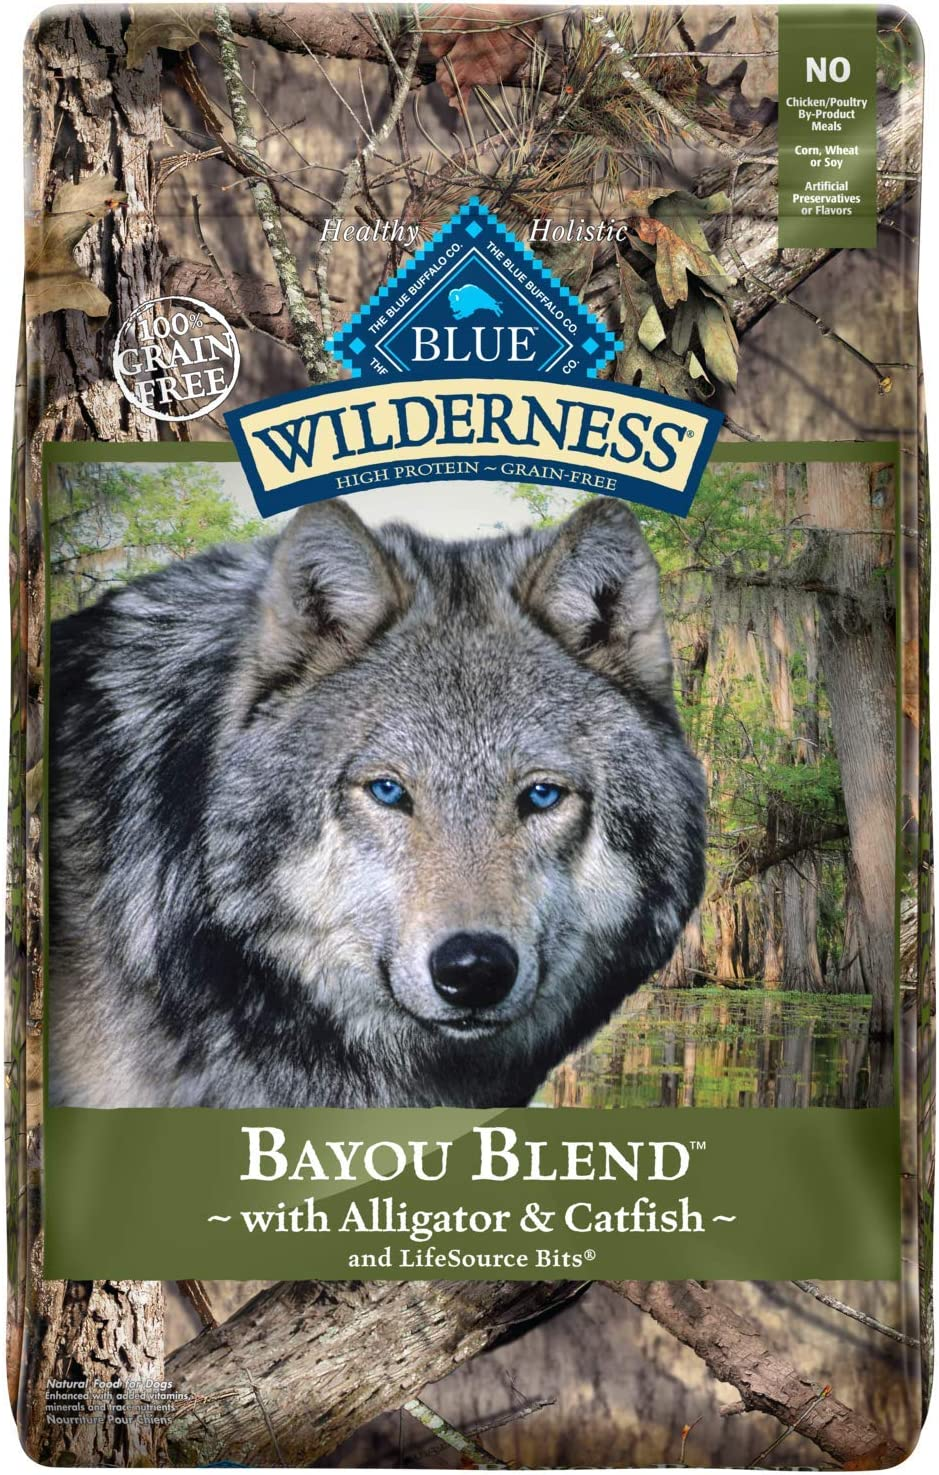 Blue Buffalo Wilderness Bayou Blend High Protein Grain Free, Natural Dry Dog Food with Alligator Catfish